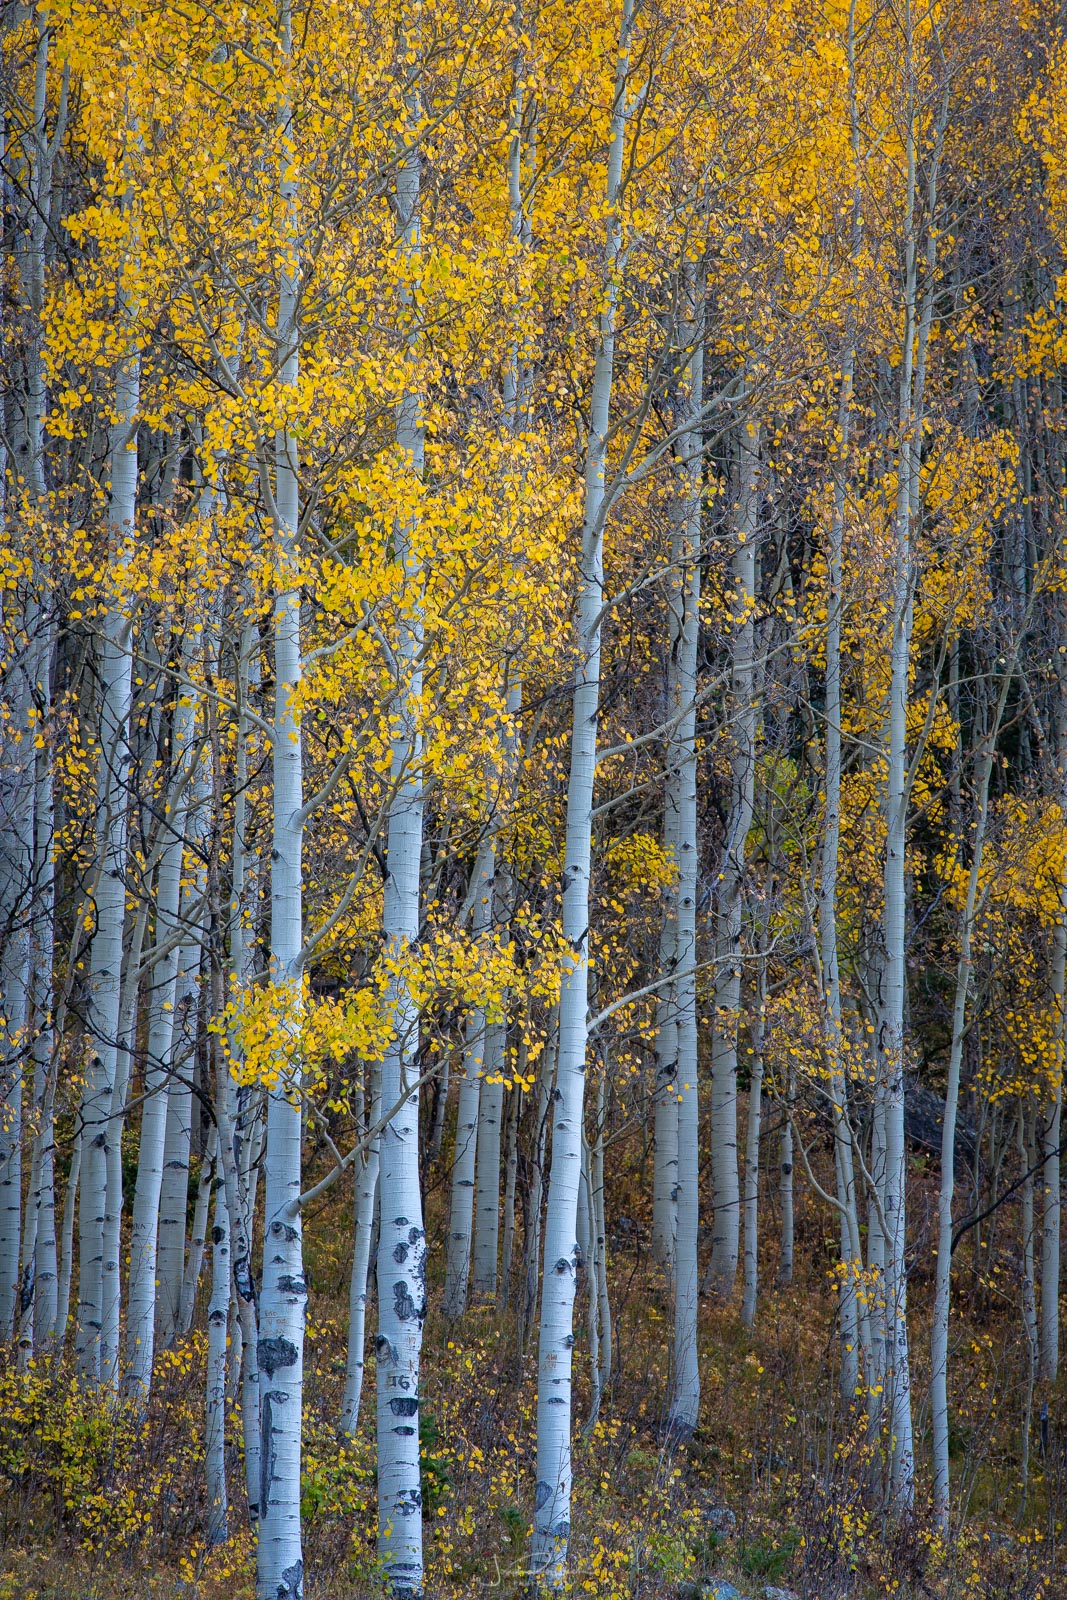 Intimate stand of autumn aspens near Crystal Lake.